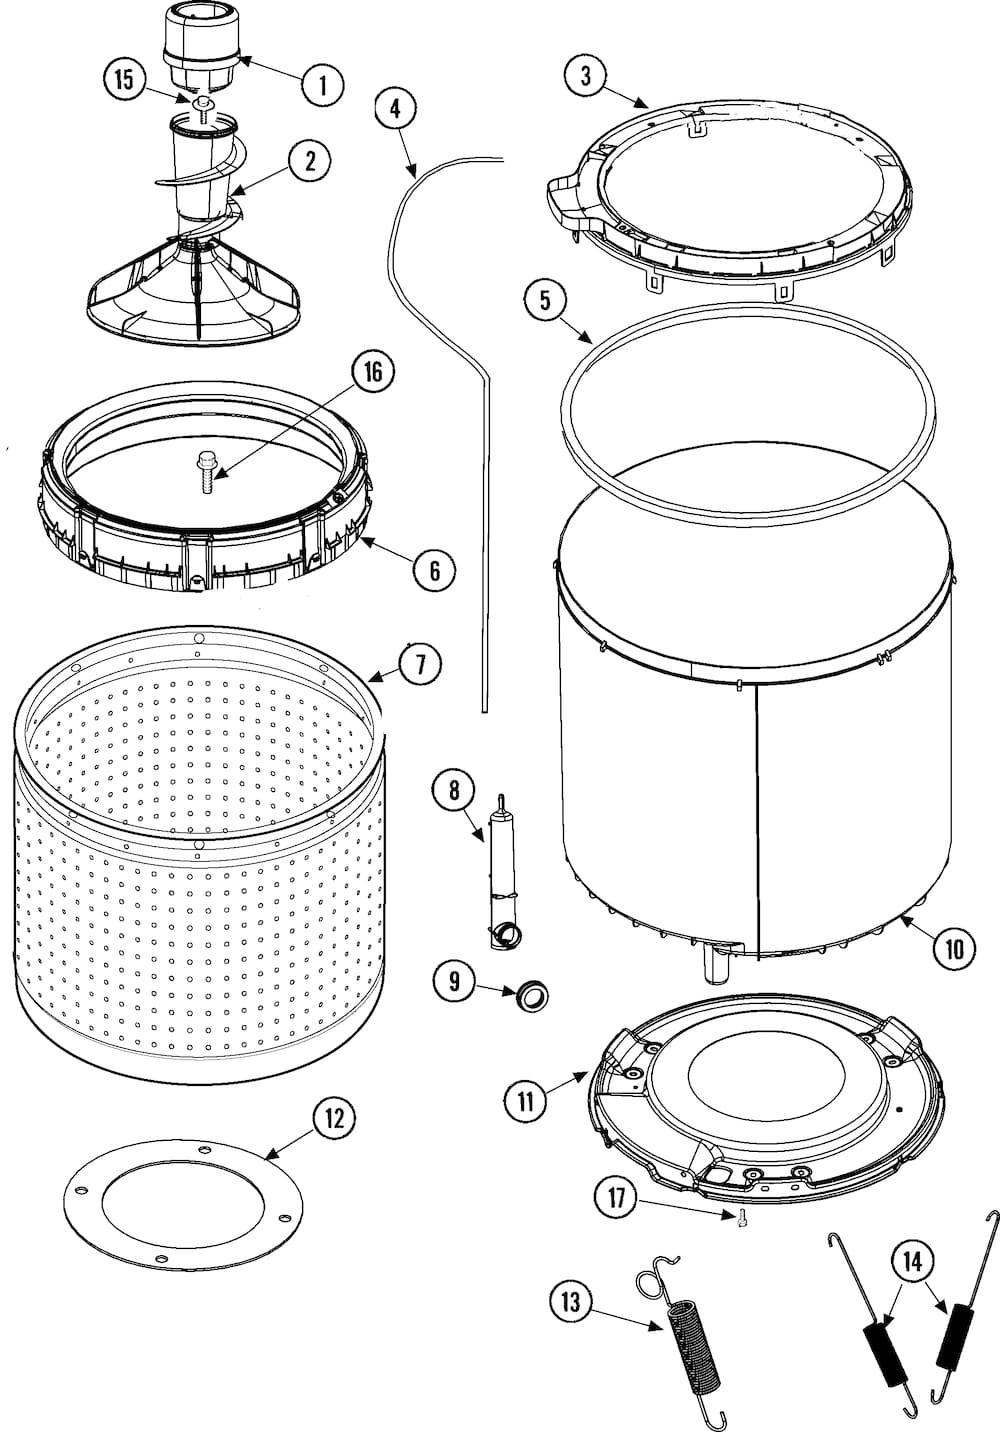 Maytag Washer Parts | Model Sav2555Aww | Sears Partsdirect throughout Maytag Front Load Washer Parts Diagram